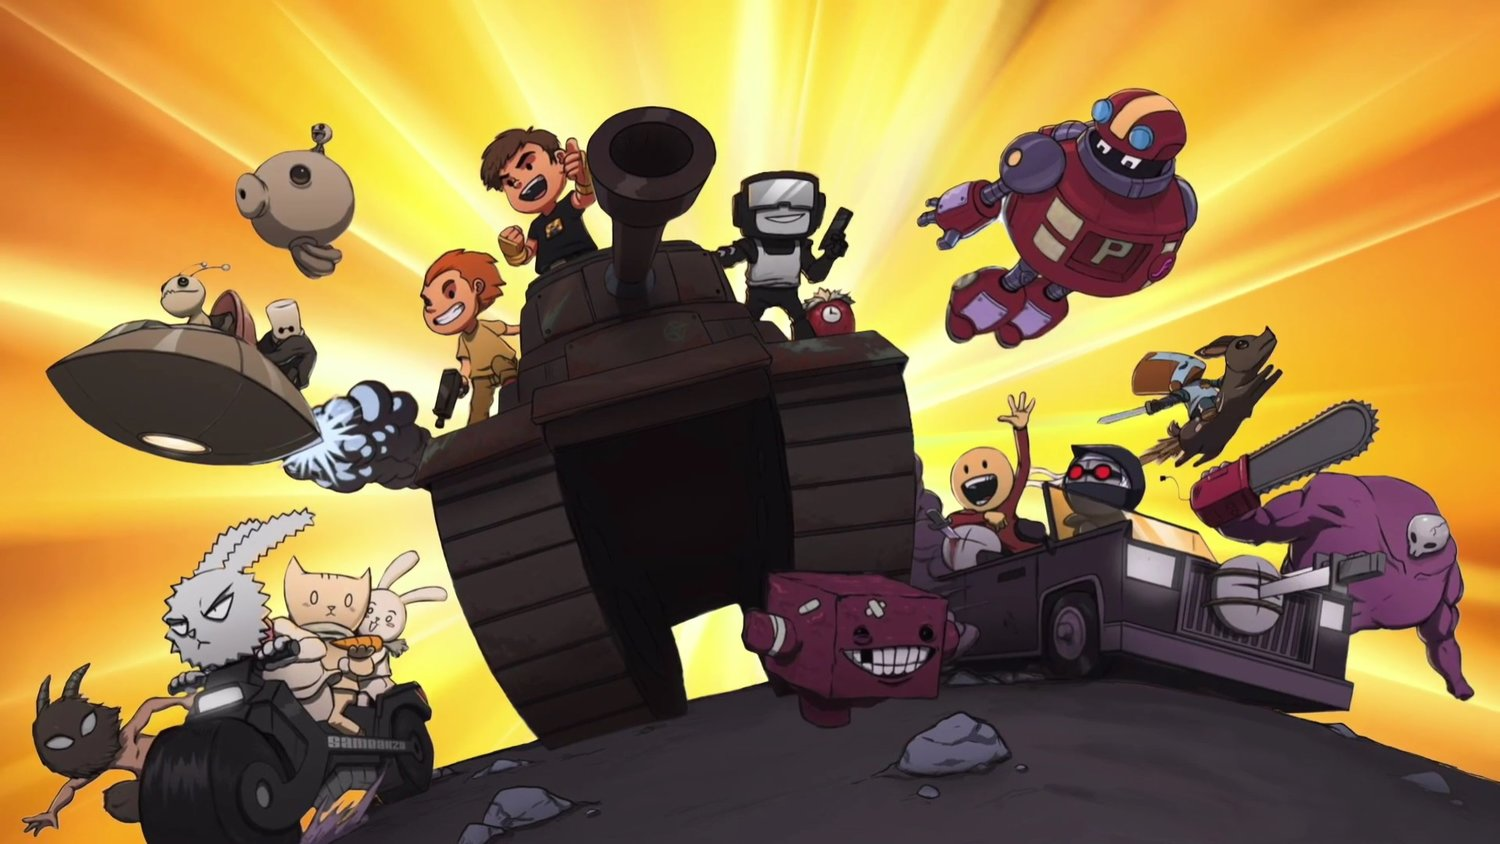 Video Explains How Newgrounds Inspired a Generation of Animation